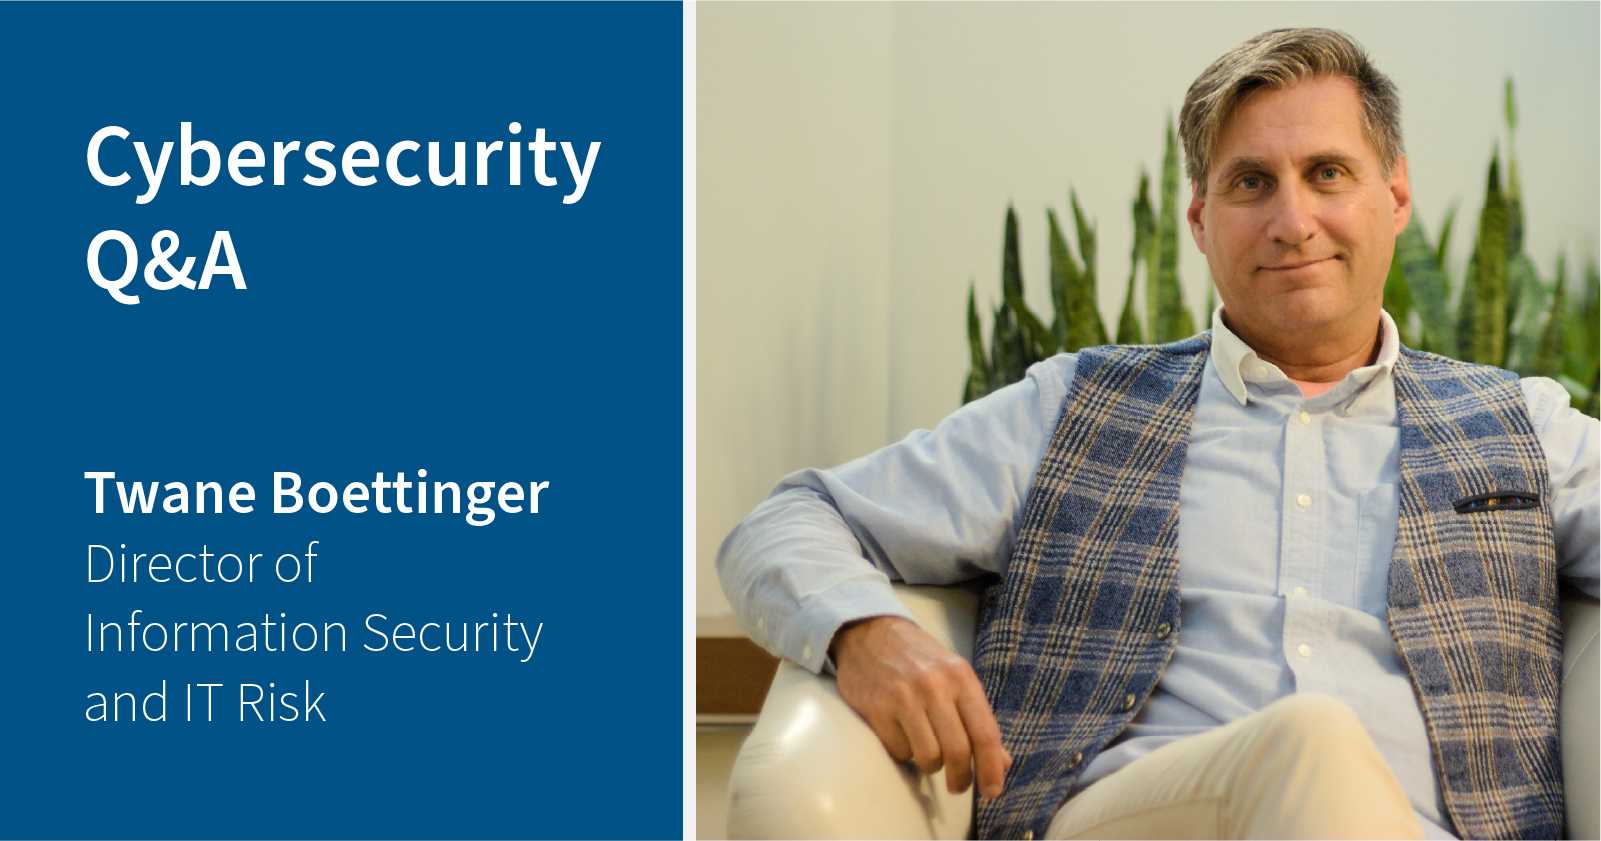 photo of Twane Boettinger sitting in a chair. Caption: Cybersecurity Q&A Twane Boettinger, Director of Information Security and IT Risk